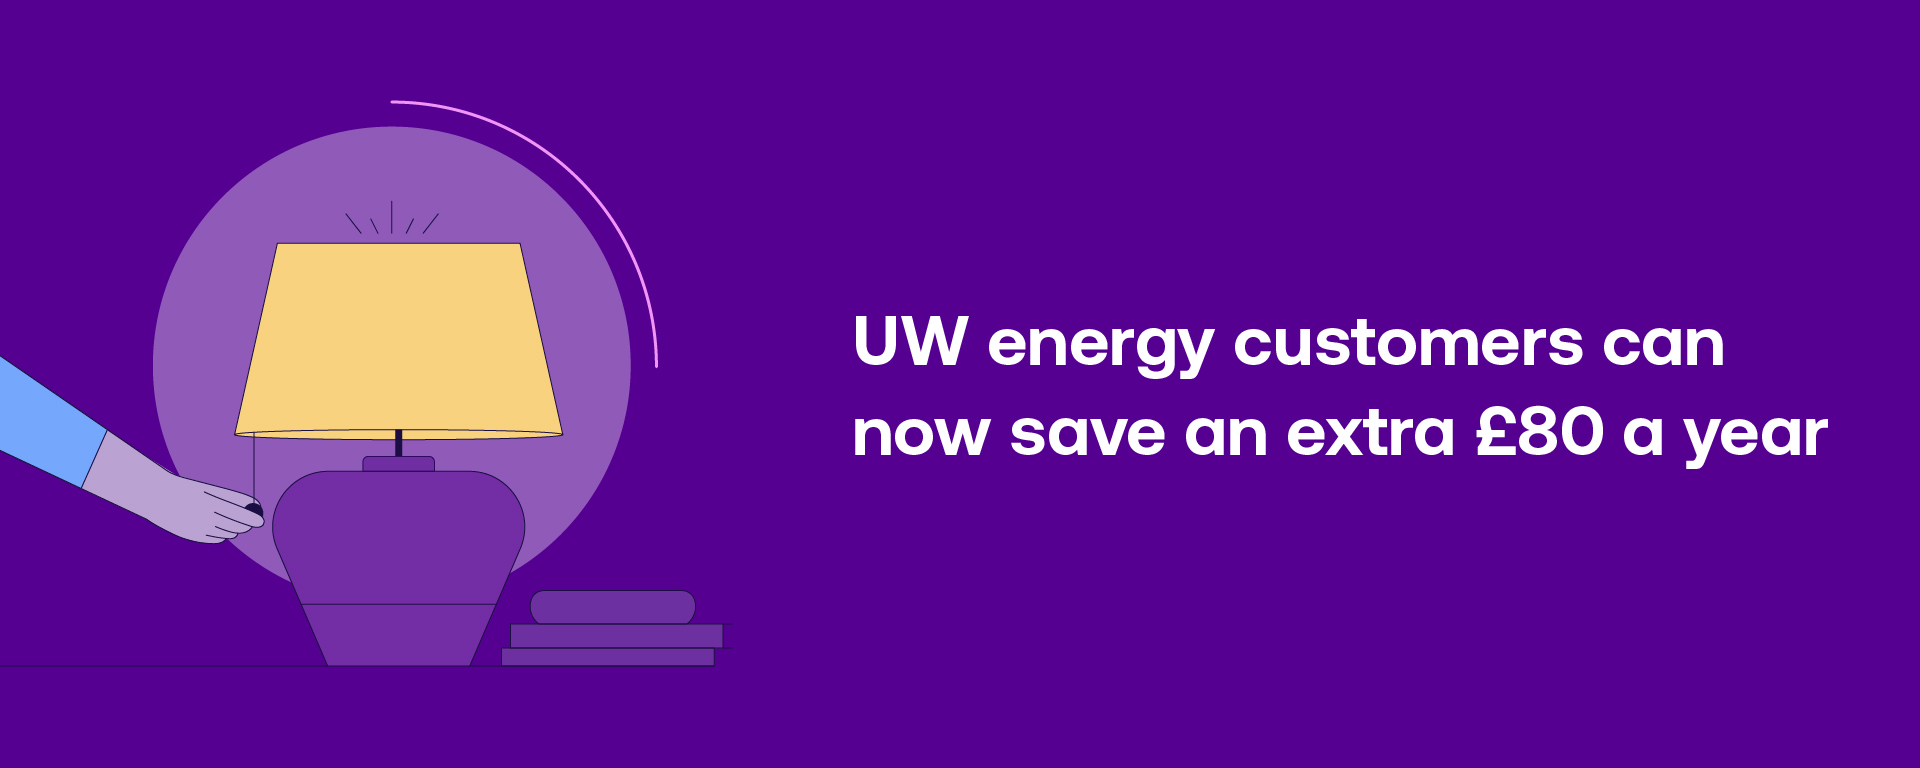 UW energy customers can now save an extra £80 a year